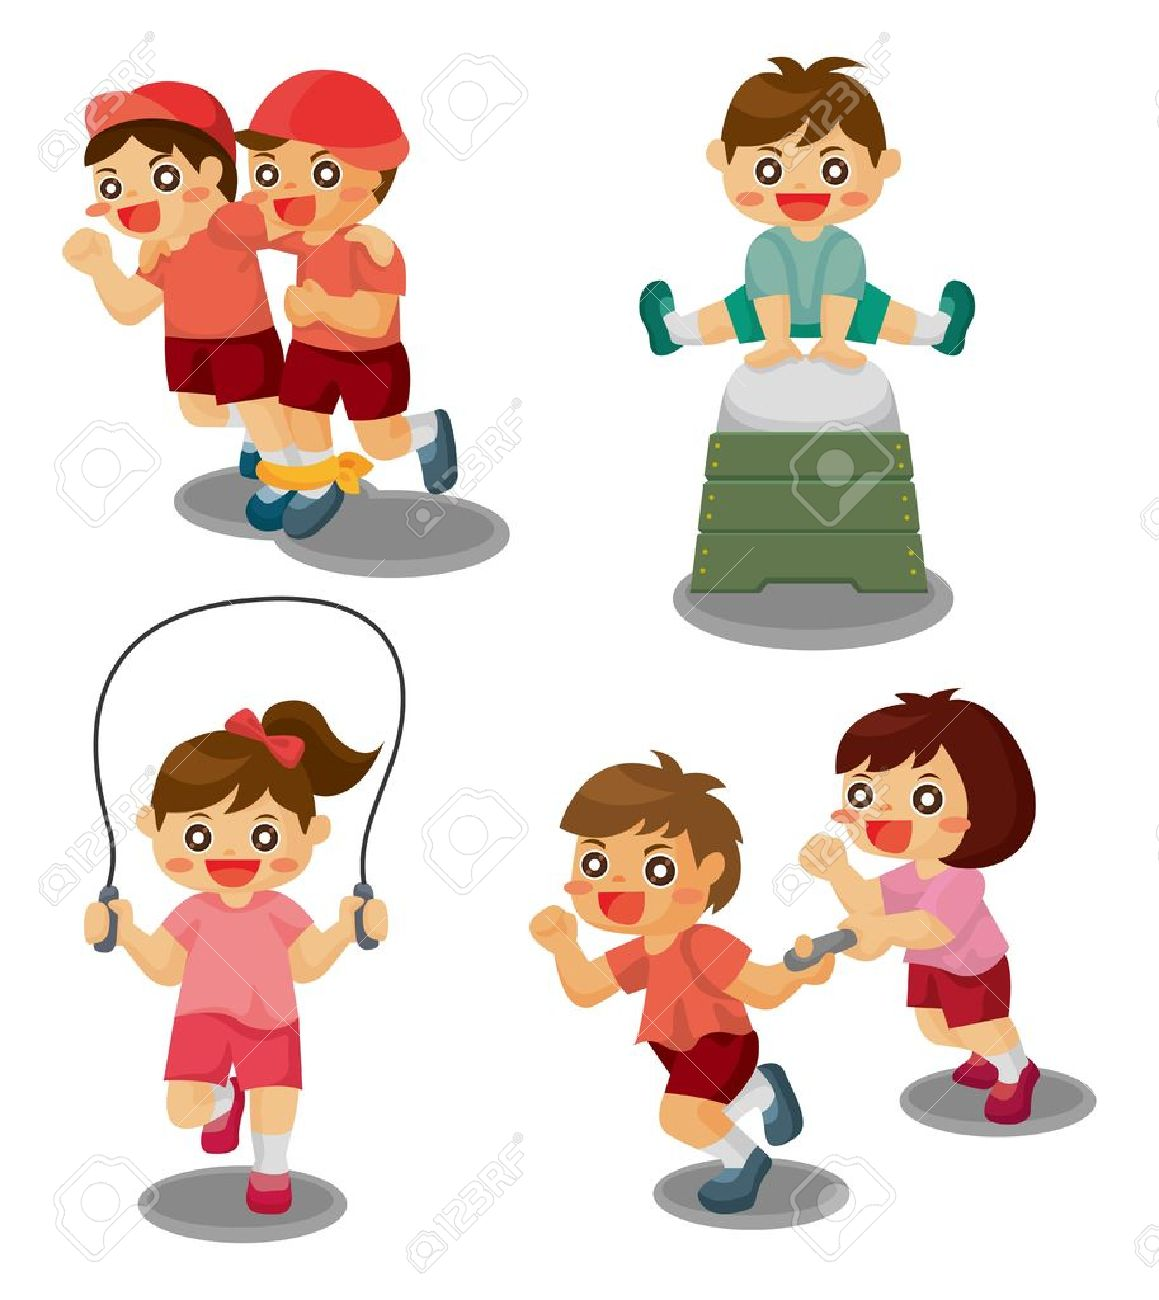 Student Sport Game Royalty Free Cliparts, Vectors, And Stock.